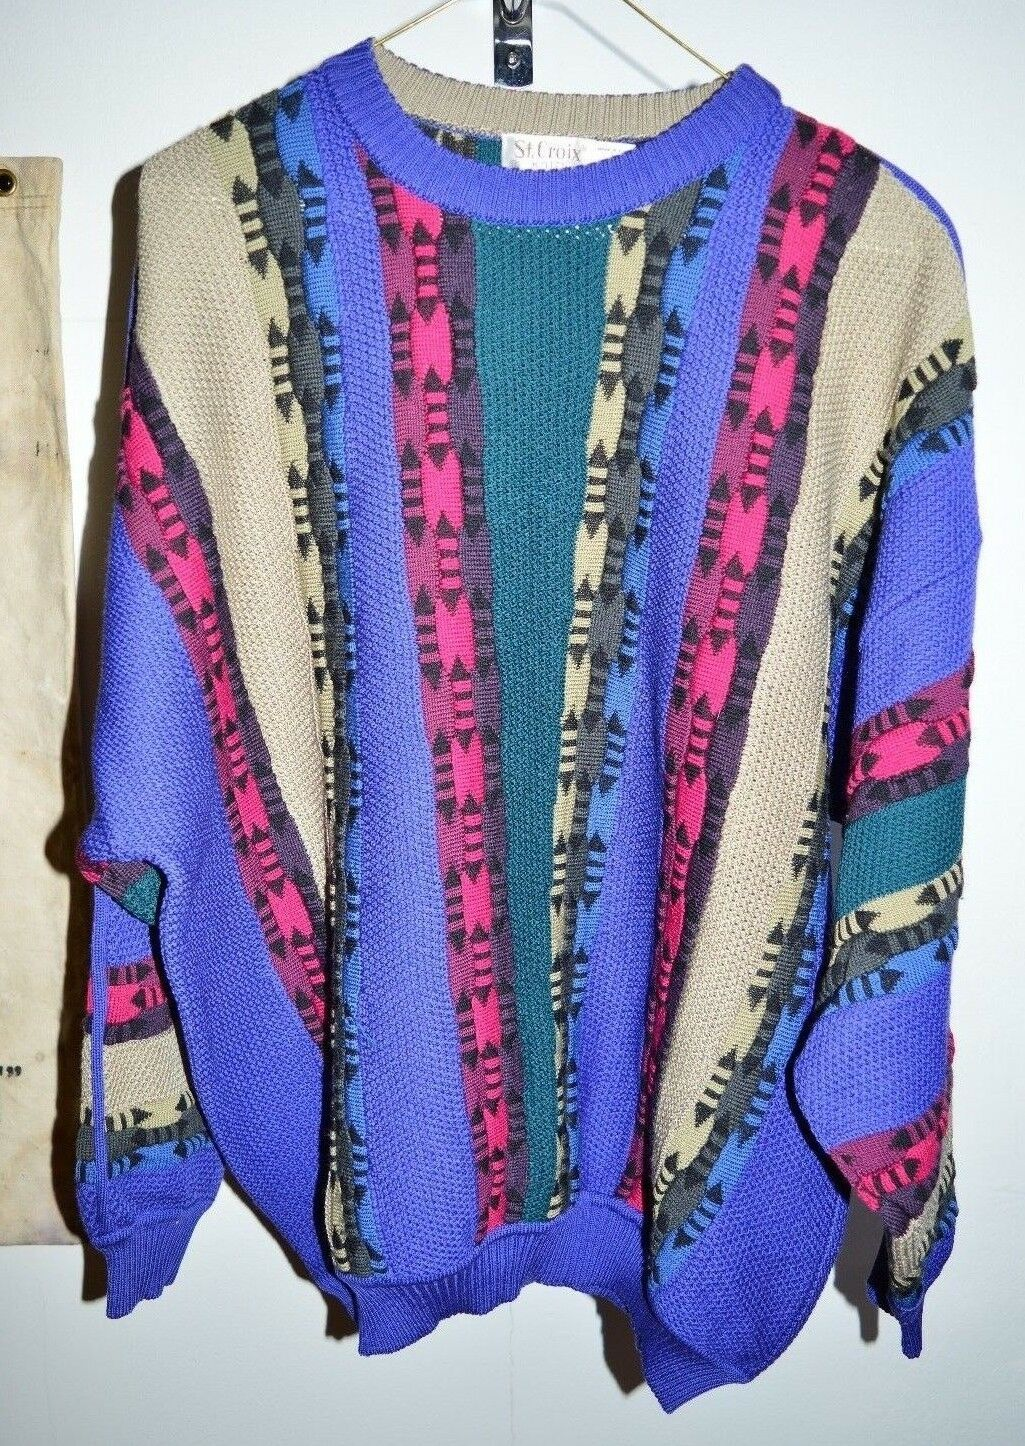 VTG St Croix Knits 100% Zephyr Wool Textured Multicolor Abstract Pattern Men's L